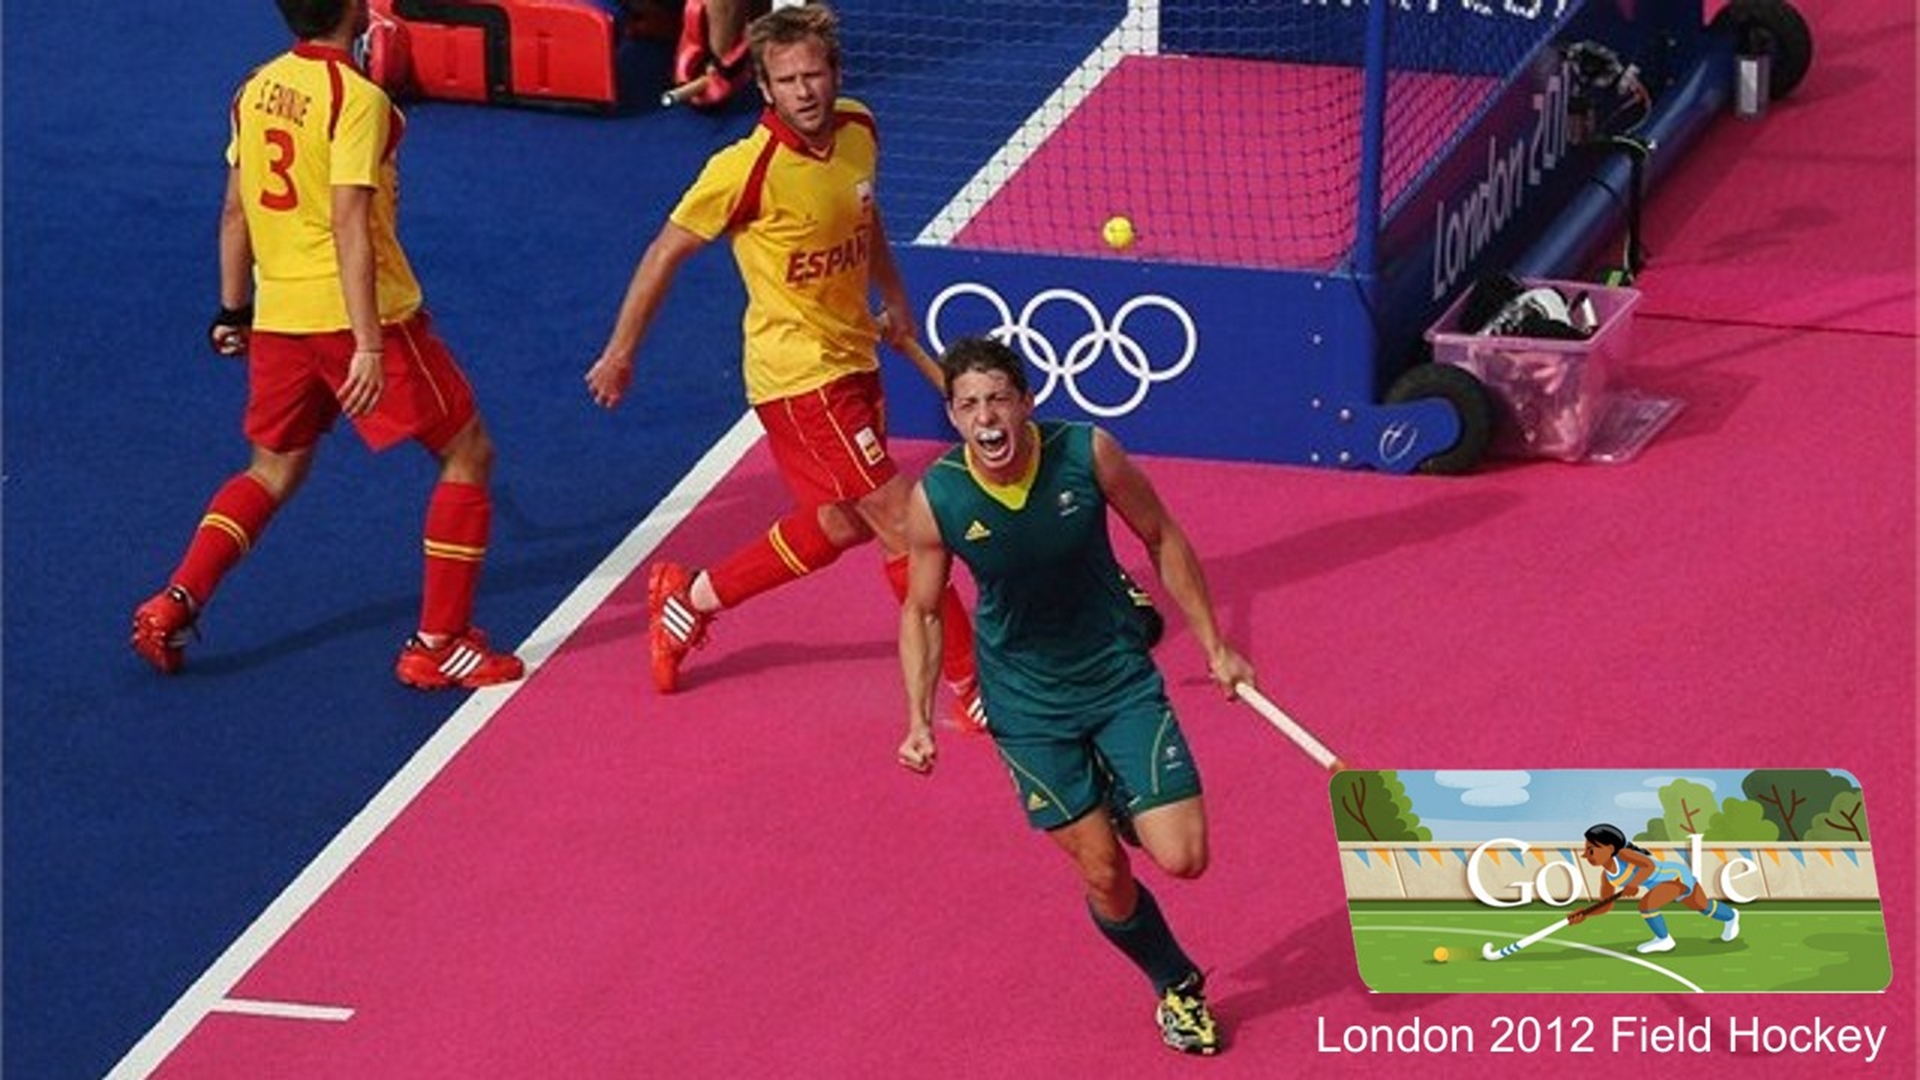 London 2012 Field Hockey